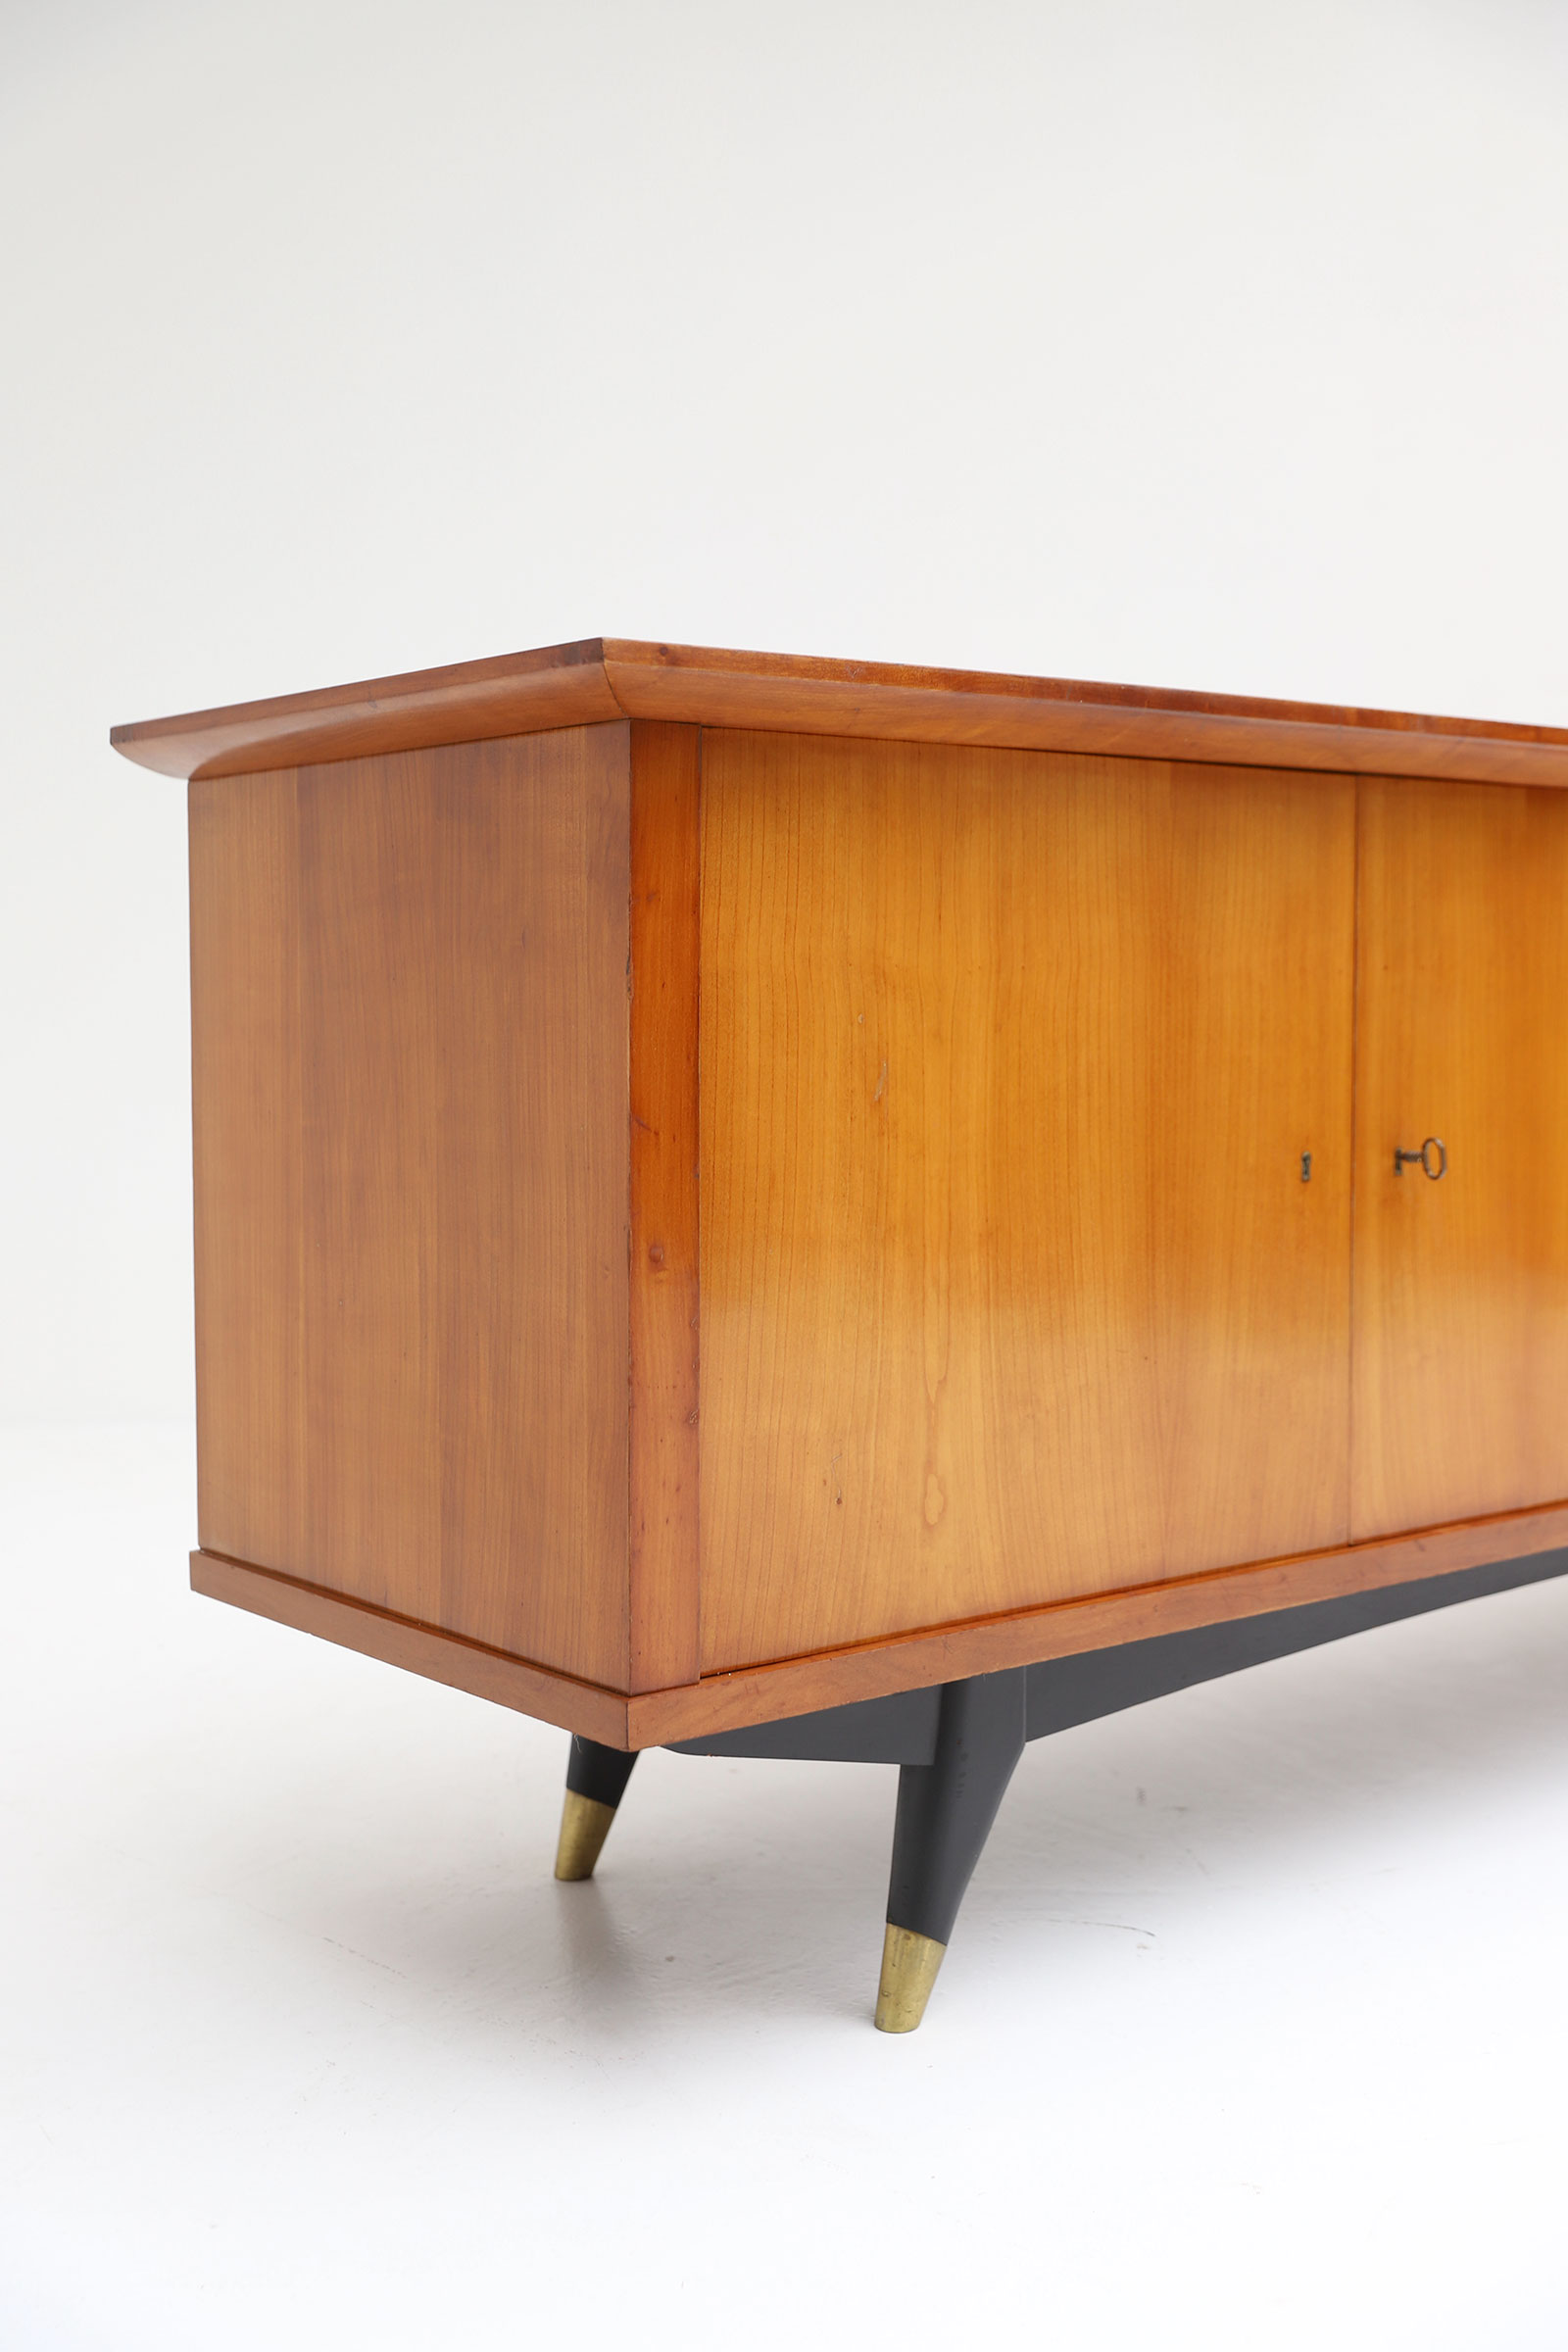 Exceptional Large 1950's Sideboard image 6